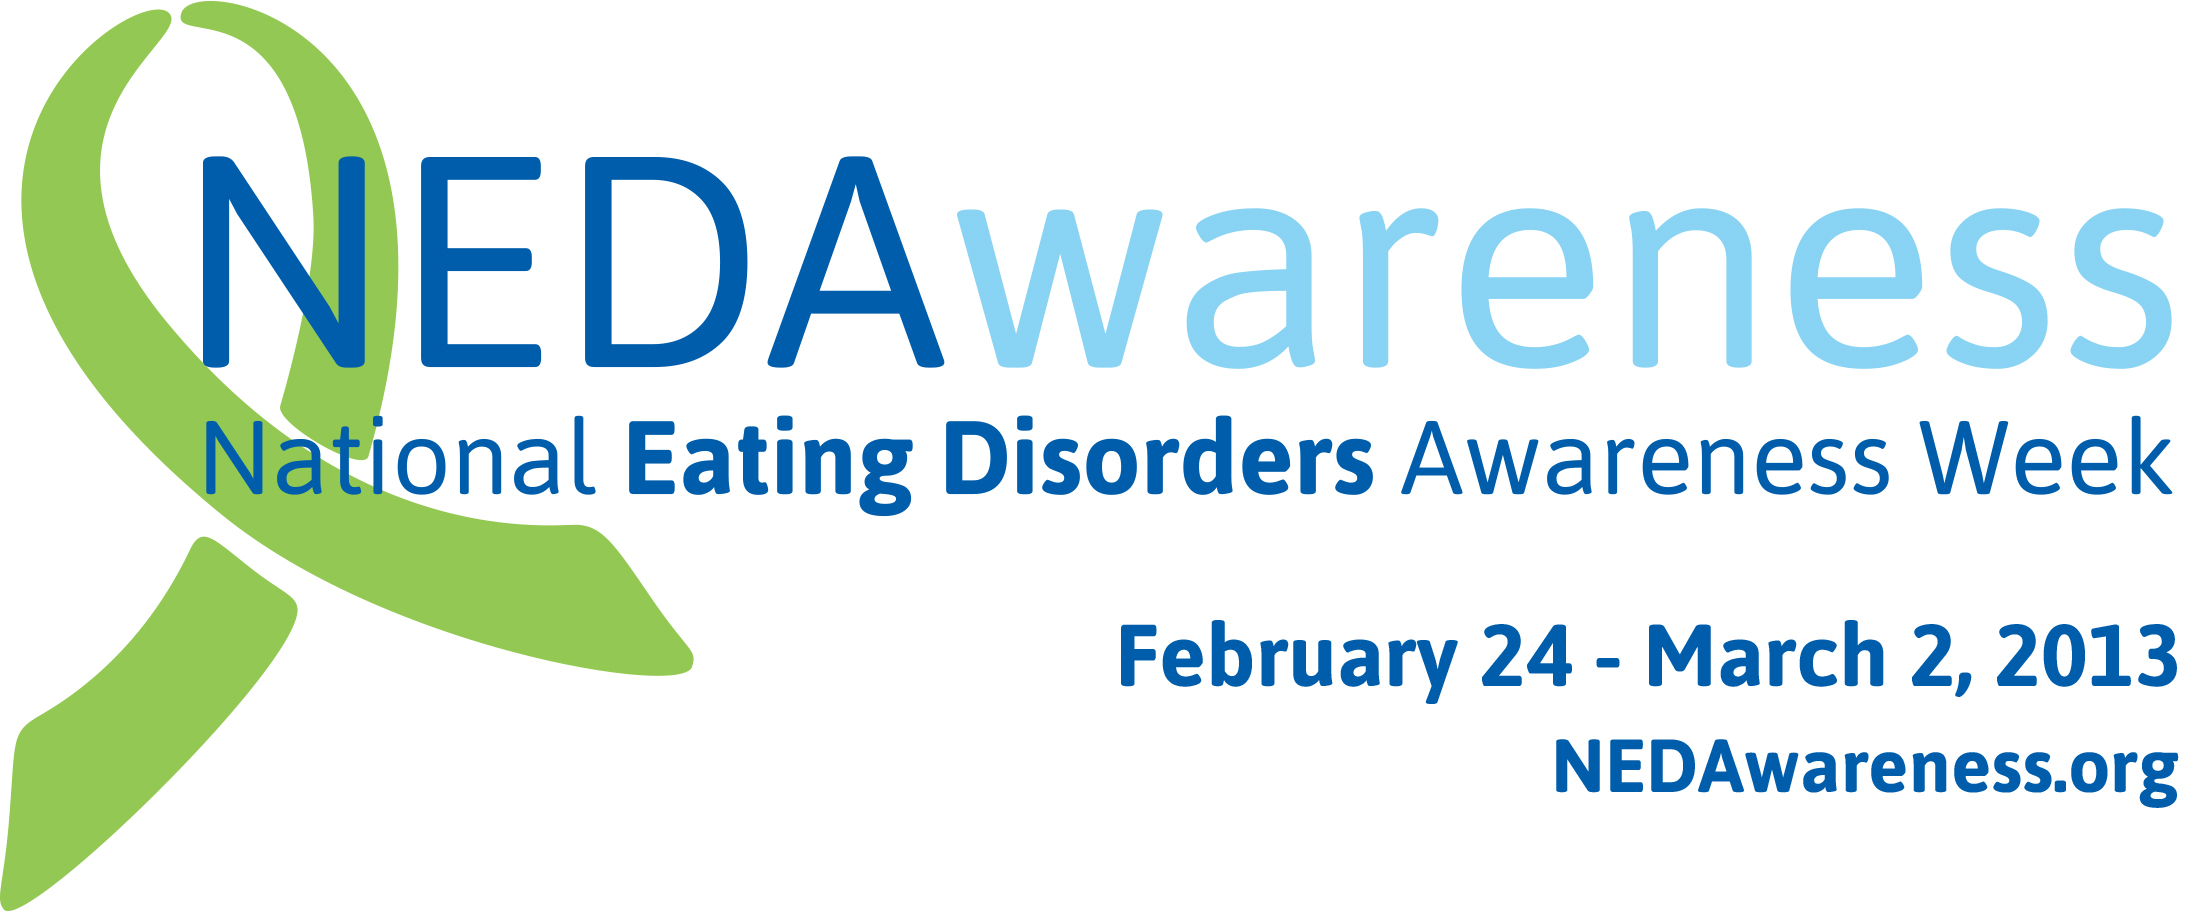 National Eating Disorders Association